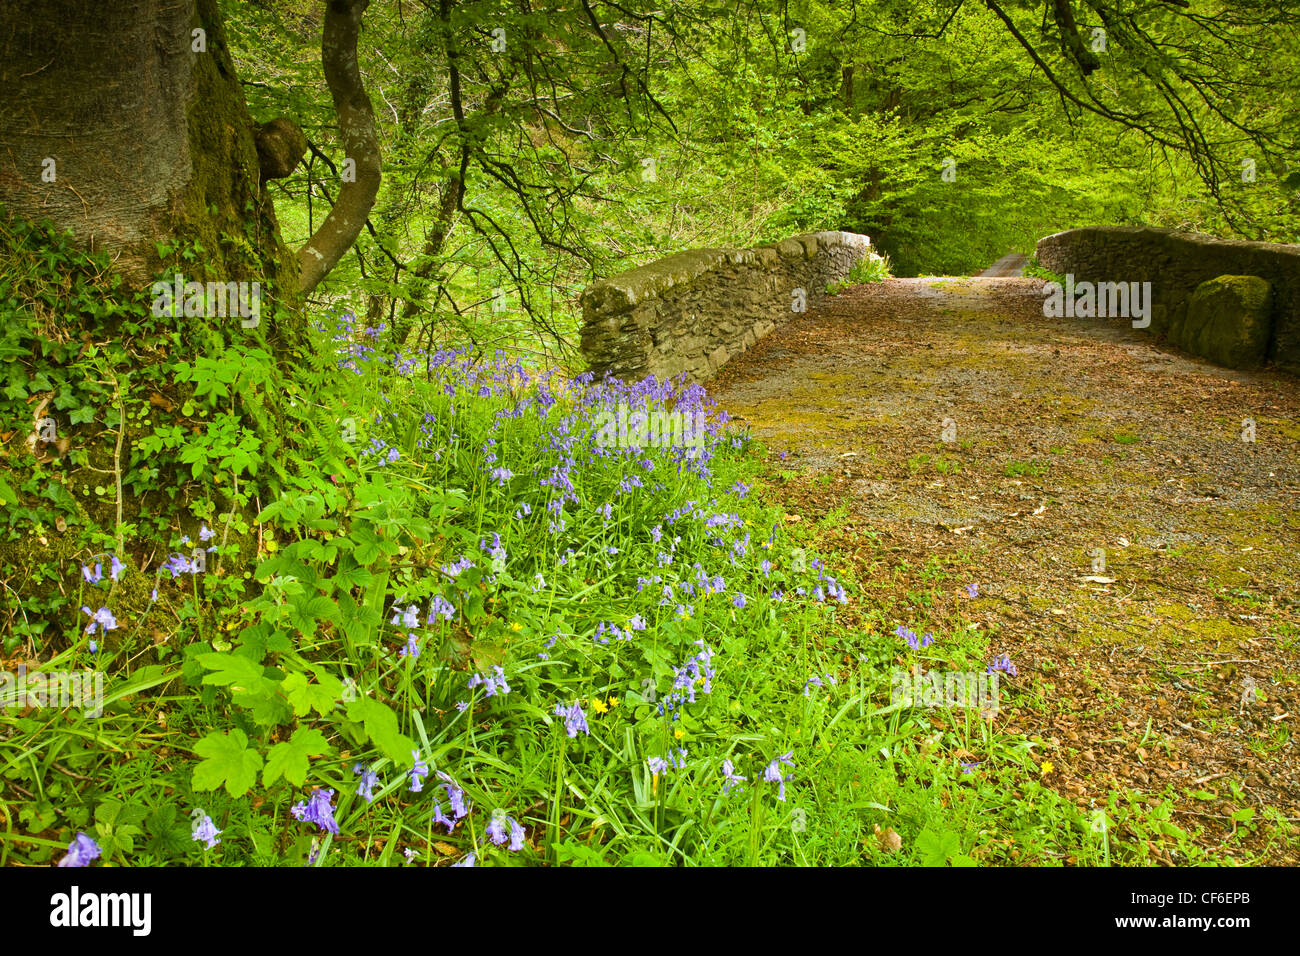 Bluebells in the foreground at the base of a large tree, beside the ancient, leaf-covered Treverbyn stone bridge - Stock Image